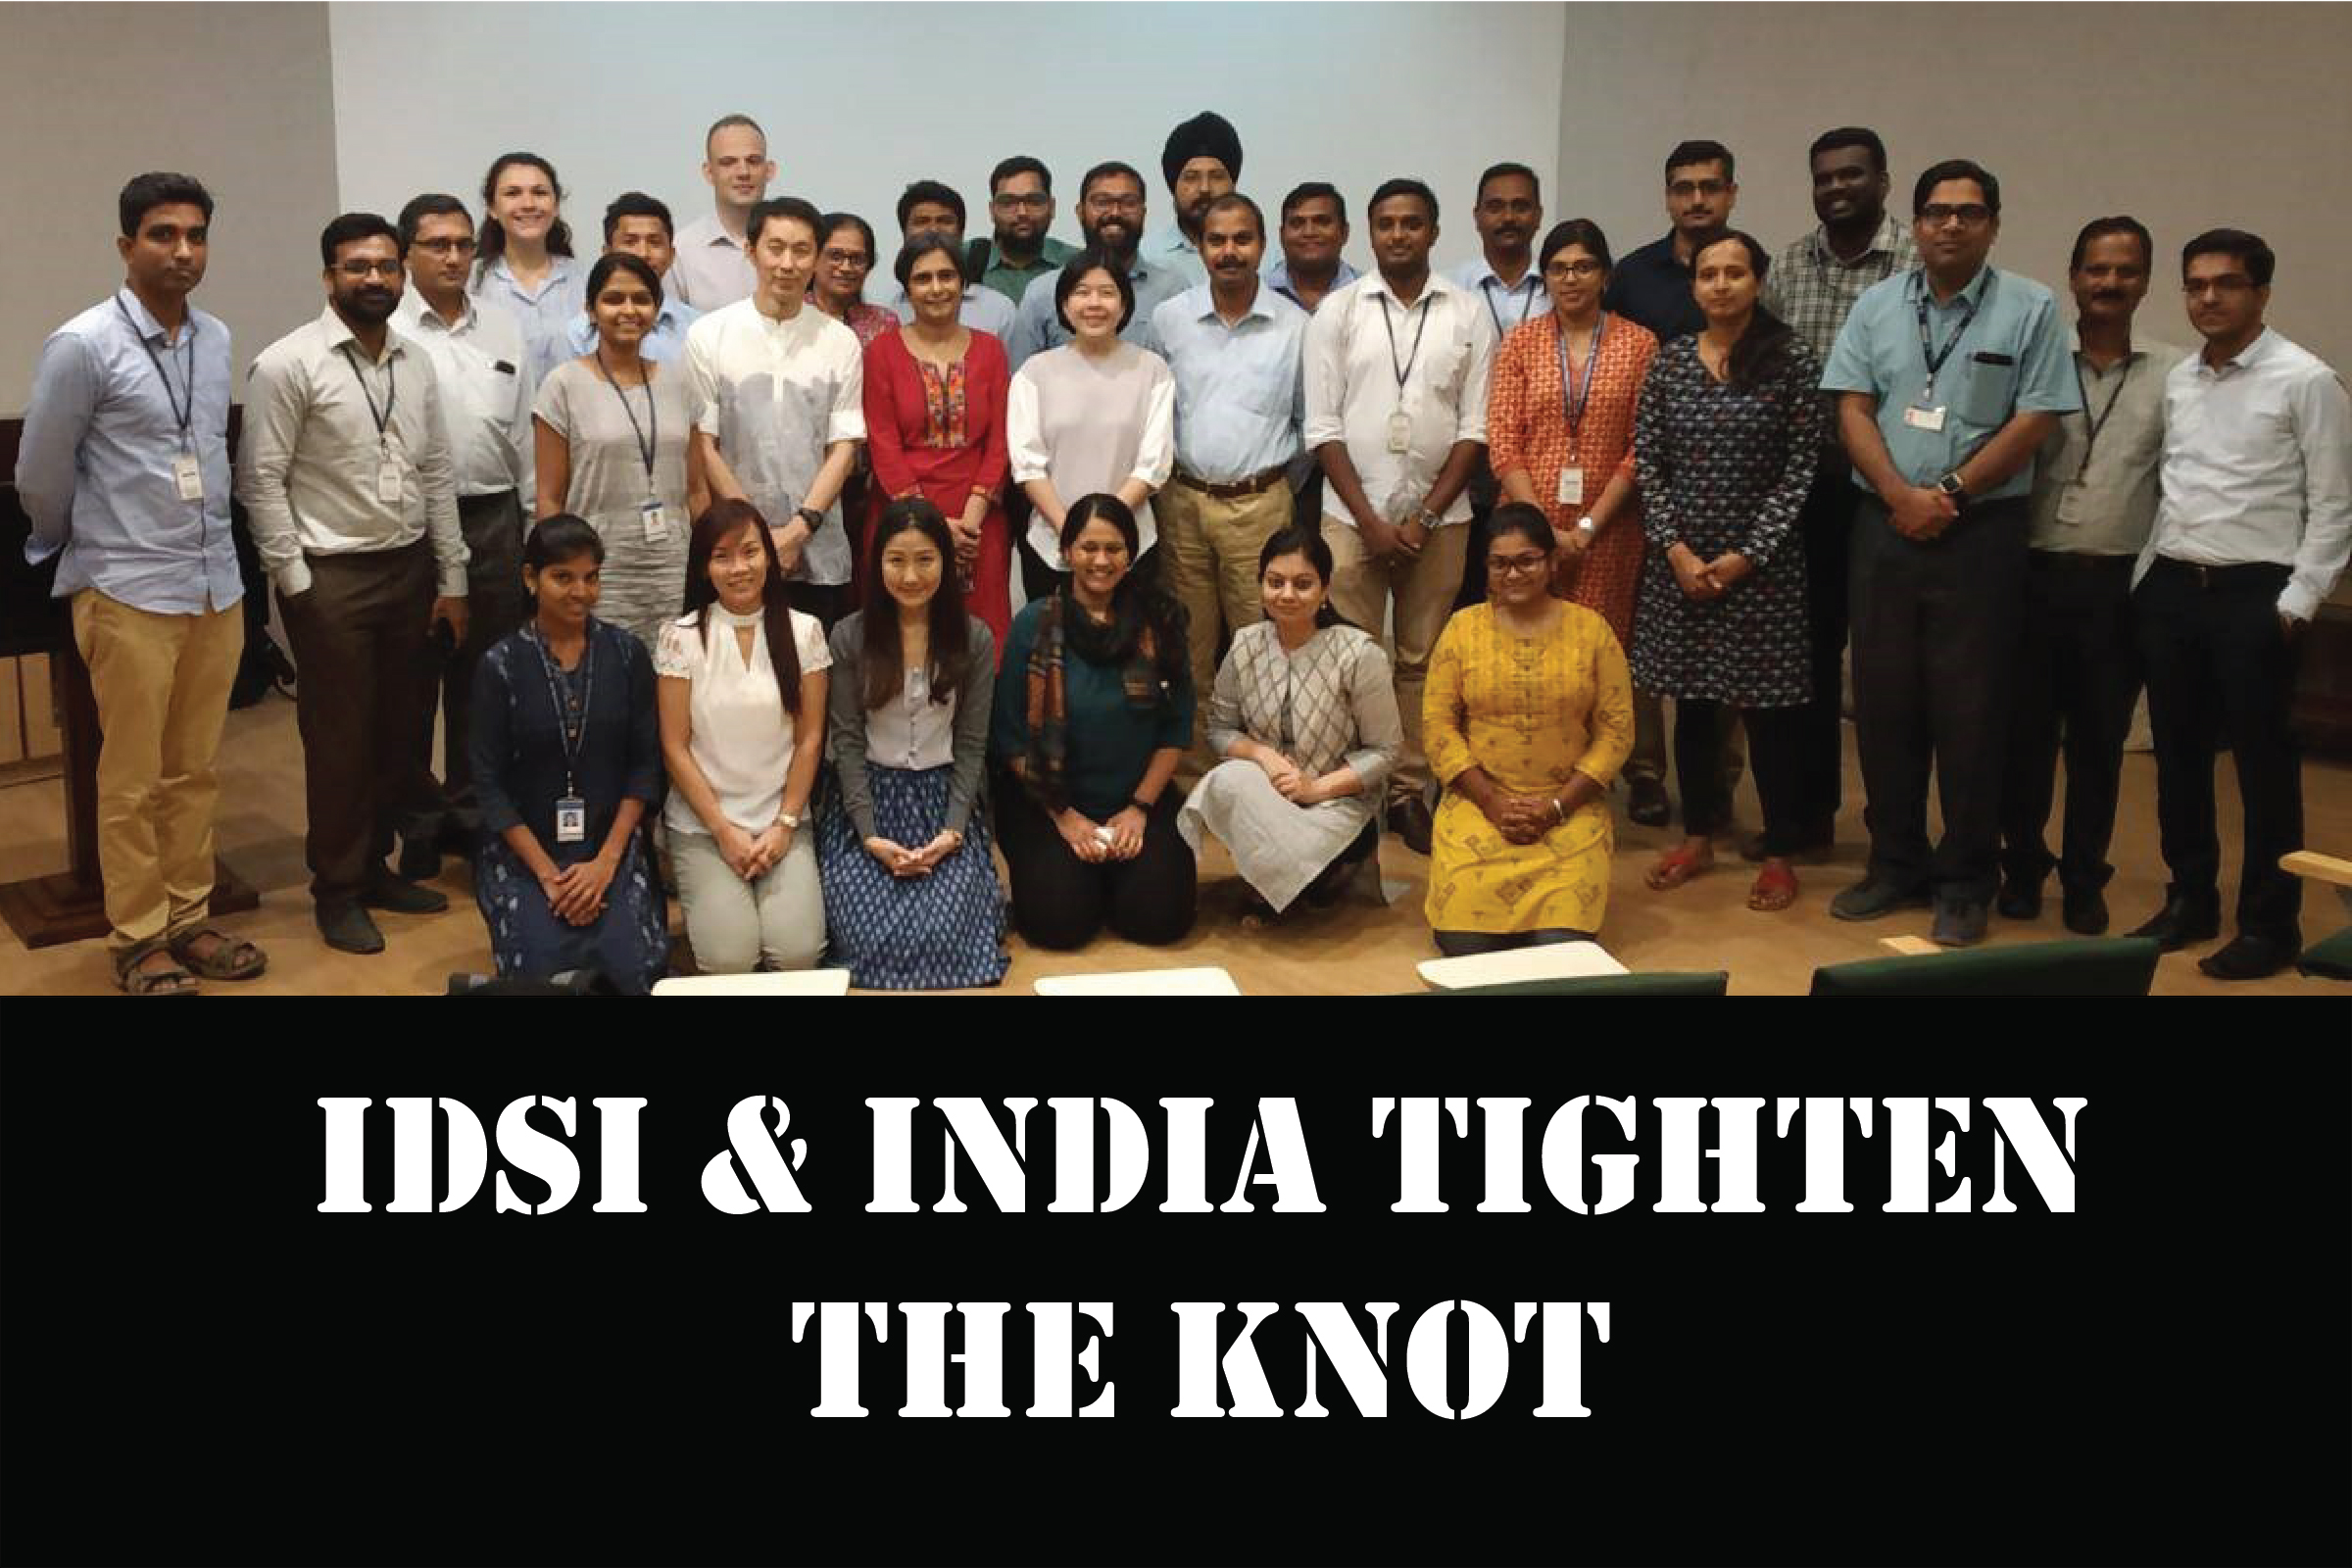 iDSI & India tighten the knot with an HTA workshop and masala dosa!